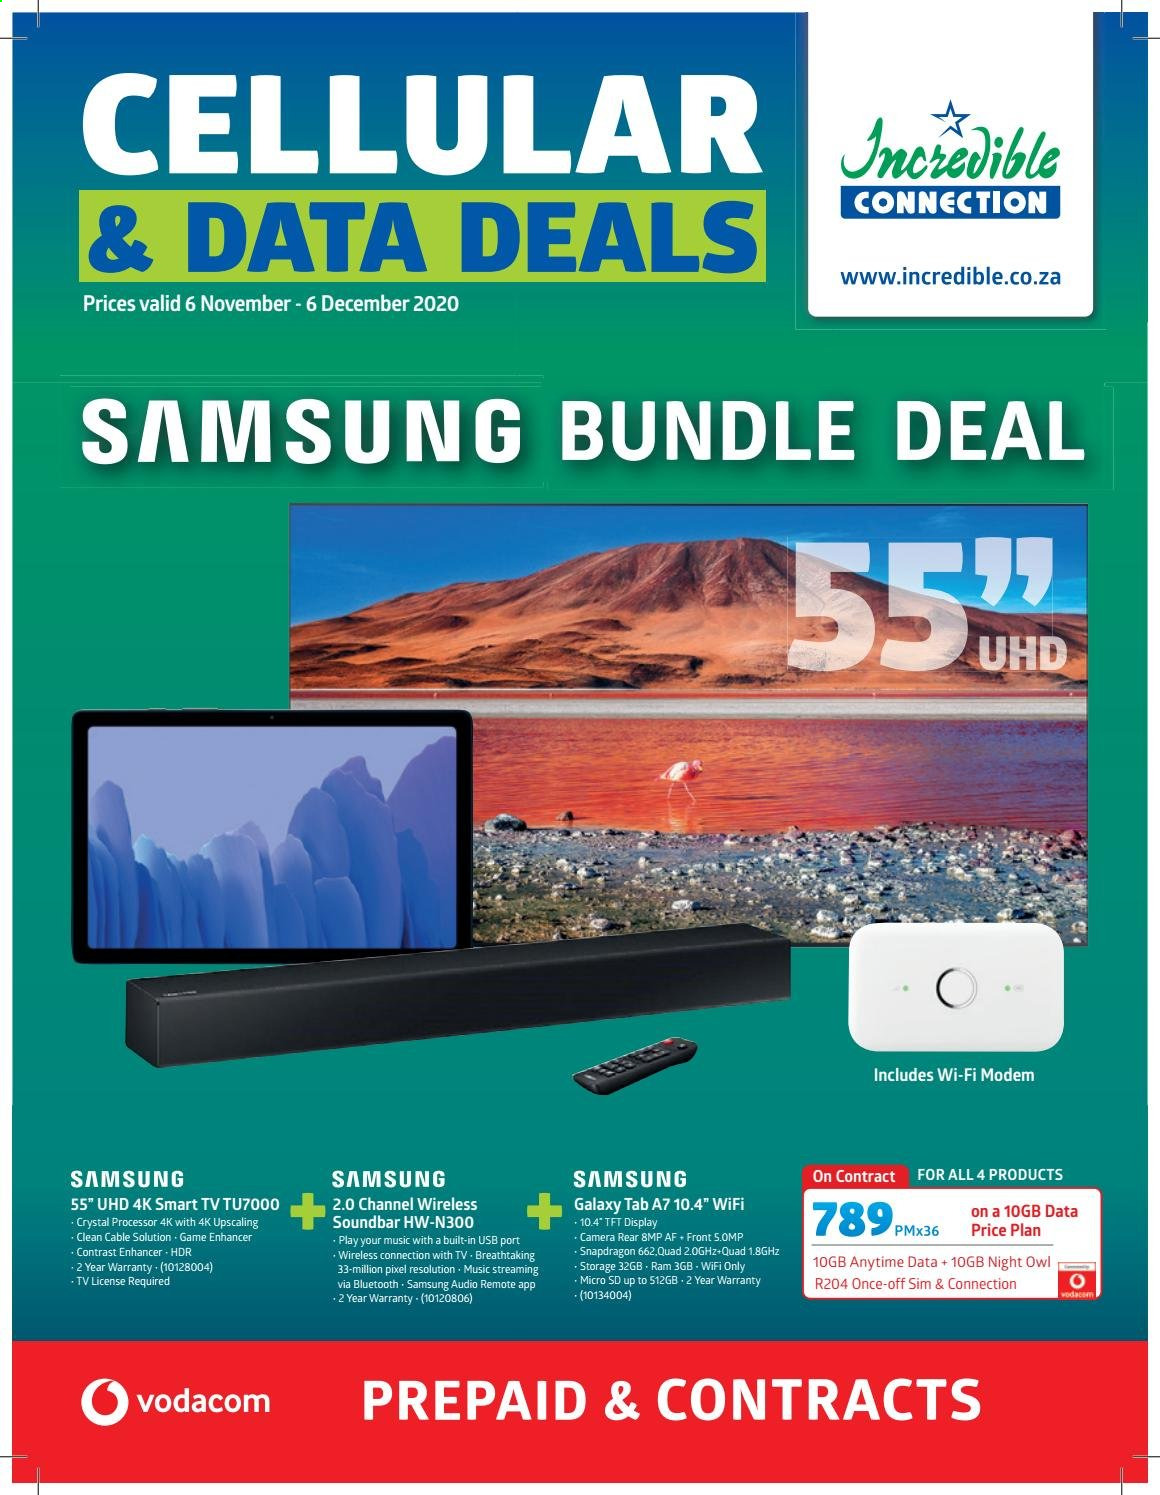 Incredible Connection catalogue  - 11.06.2020 - 12.06.2020 - Sales products - camera, galaxy, samsung, smart tv, soundbar, wifi, channel, owl, processor, wireless, game, cable, modem, usb. Page 1.